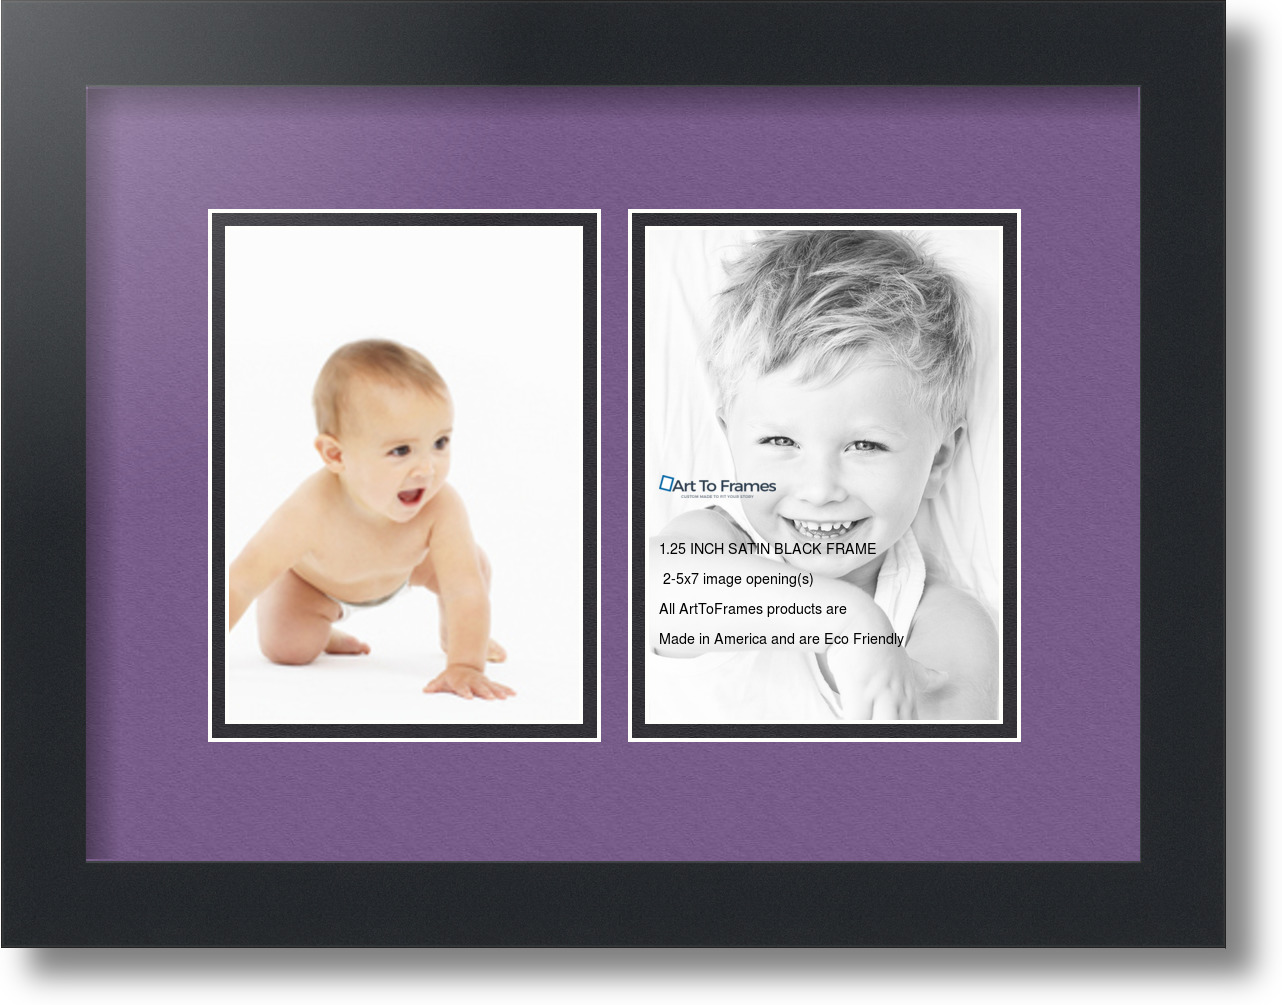 arttoframes collage mat picture photo frame 2 5x7 openings in satin black 35 ebay. Black Bedroom Furniture Sets. Home Design Ideas